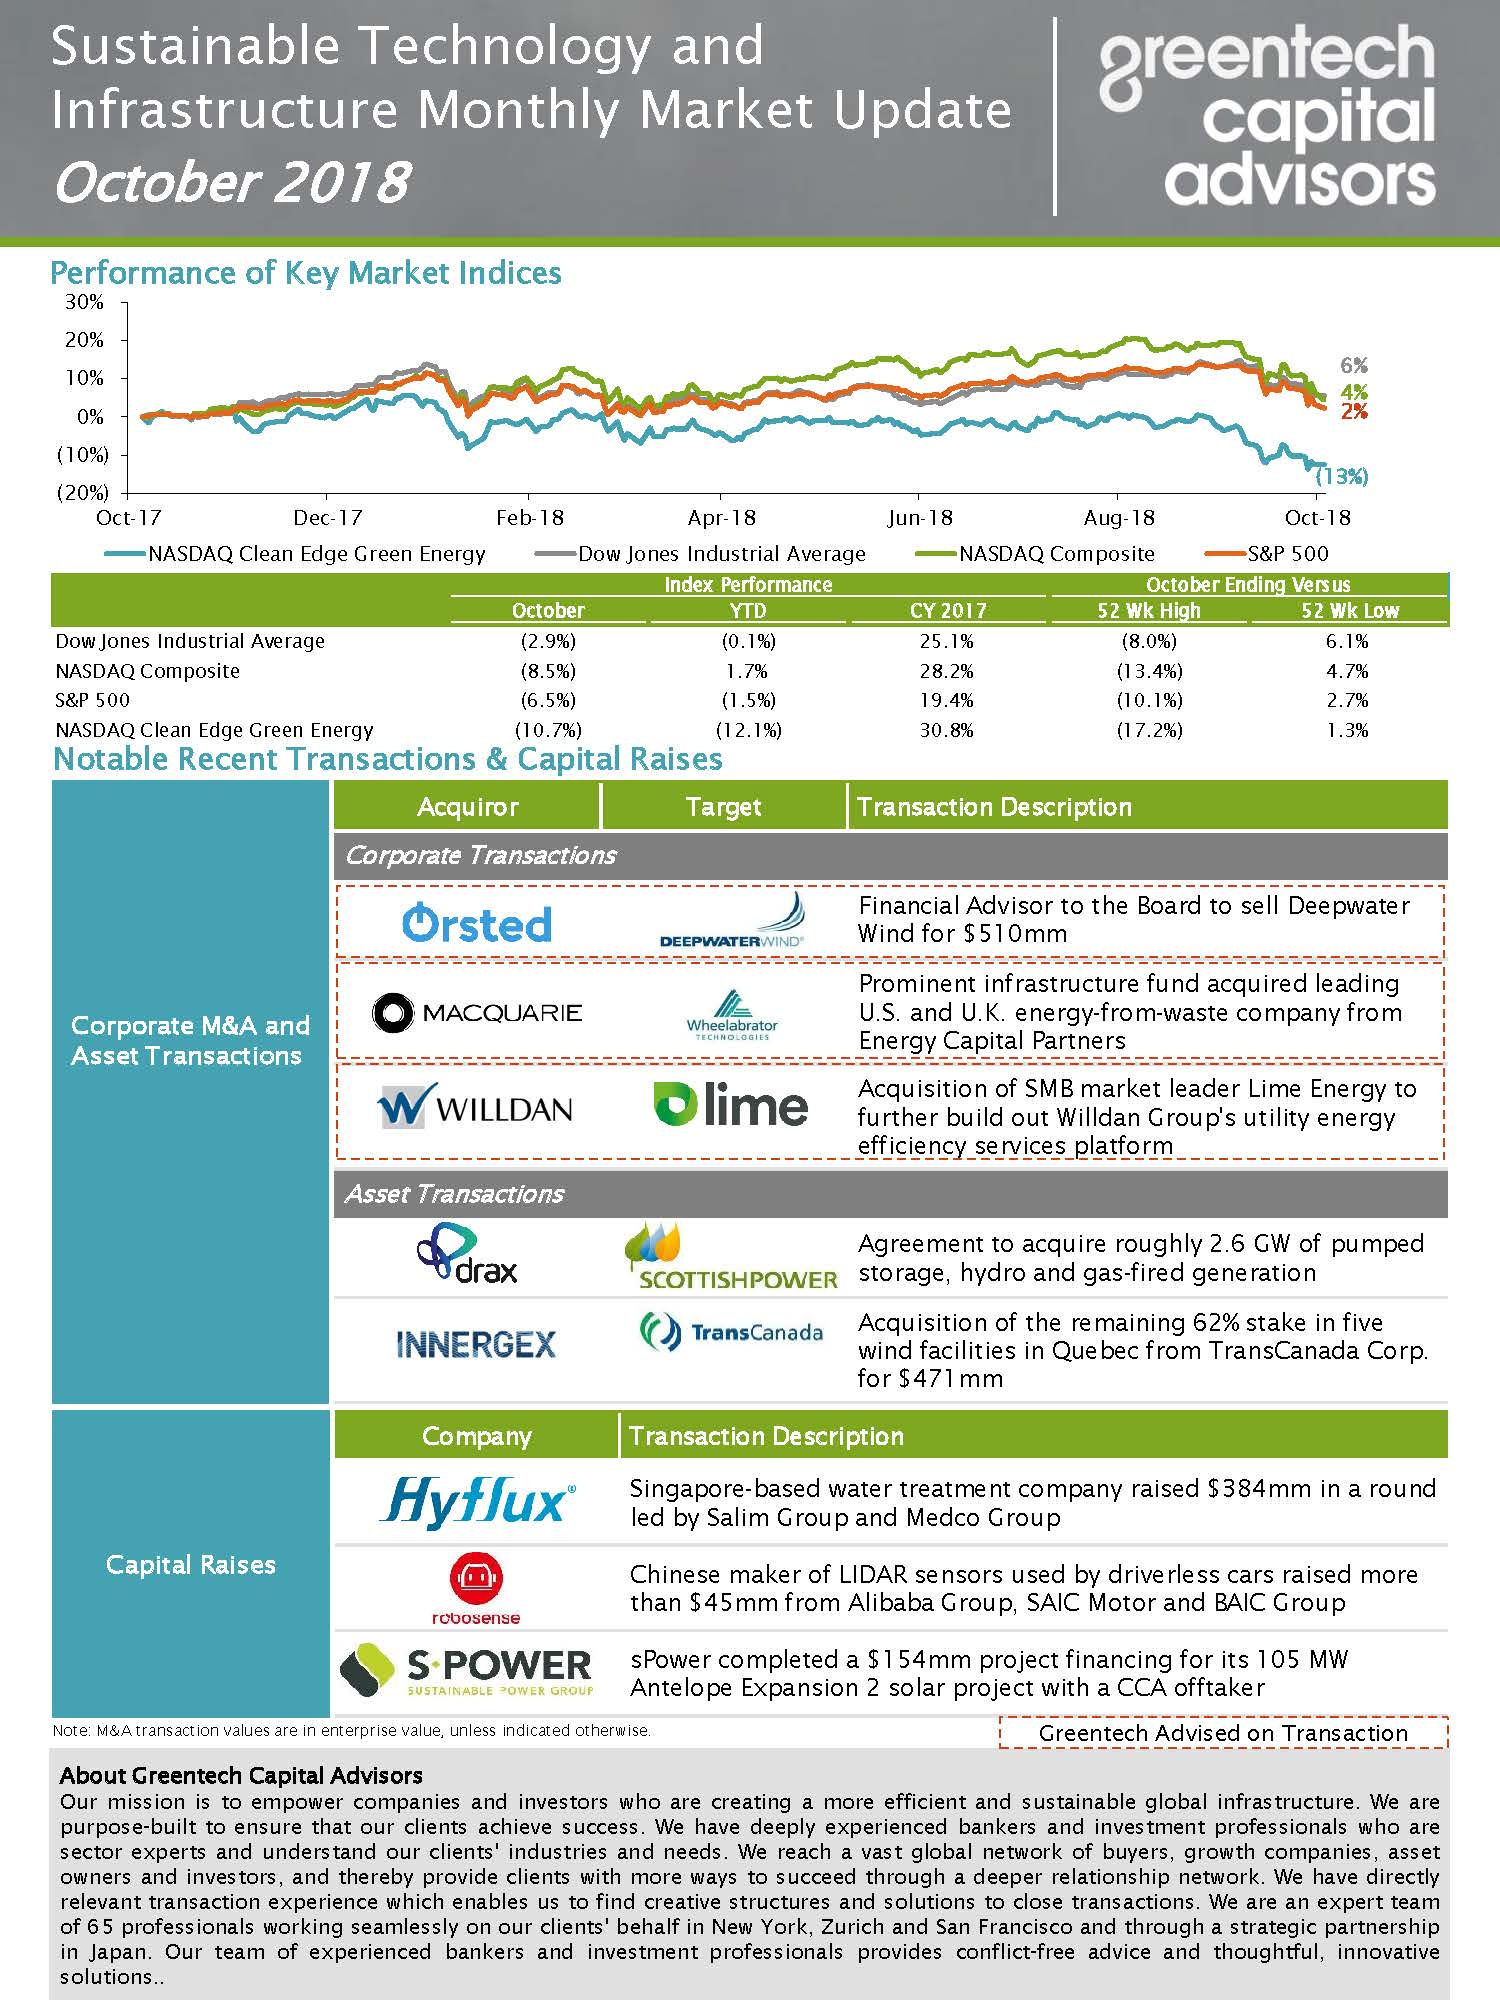 Sustainable Investing Monthly Market Update - Oct 2018